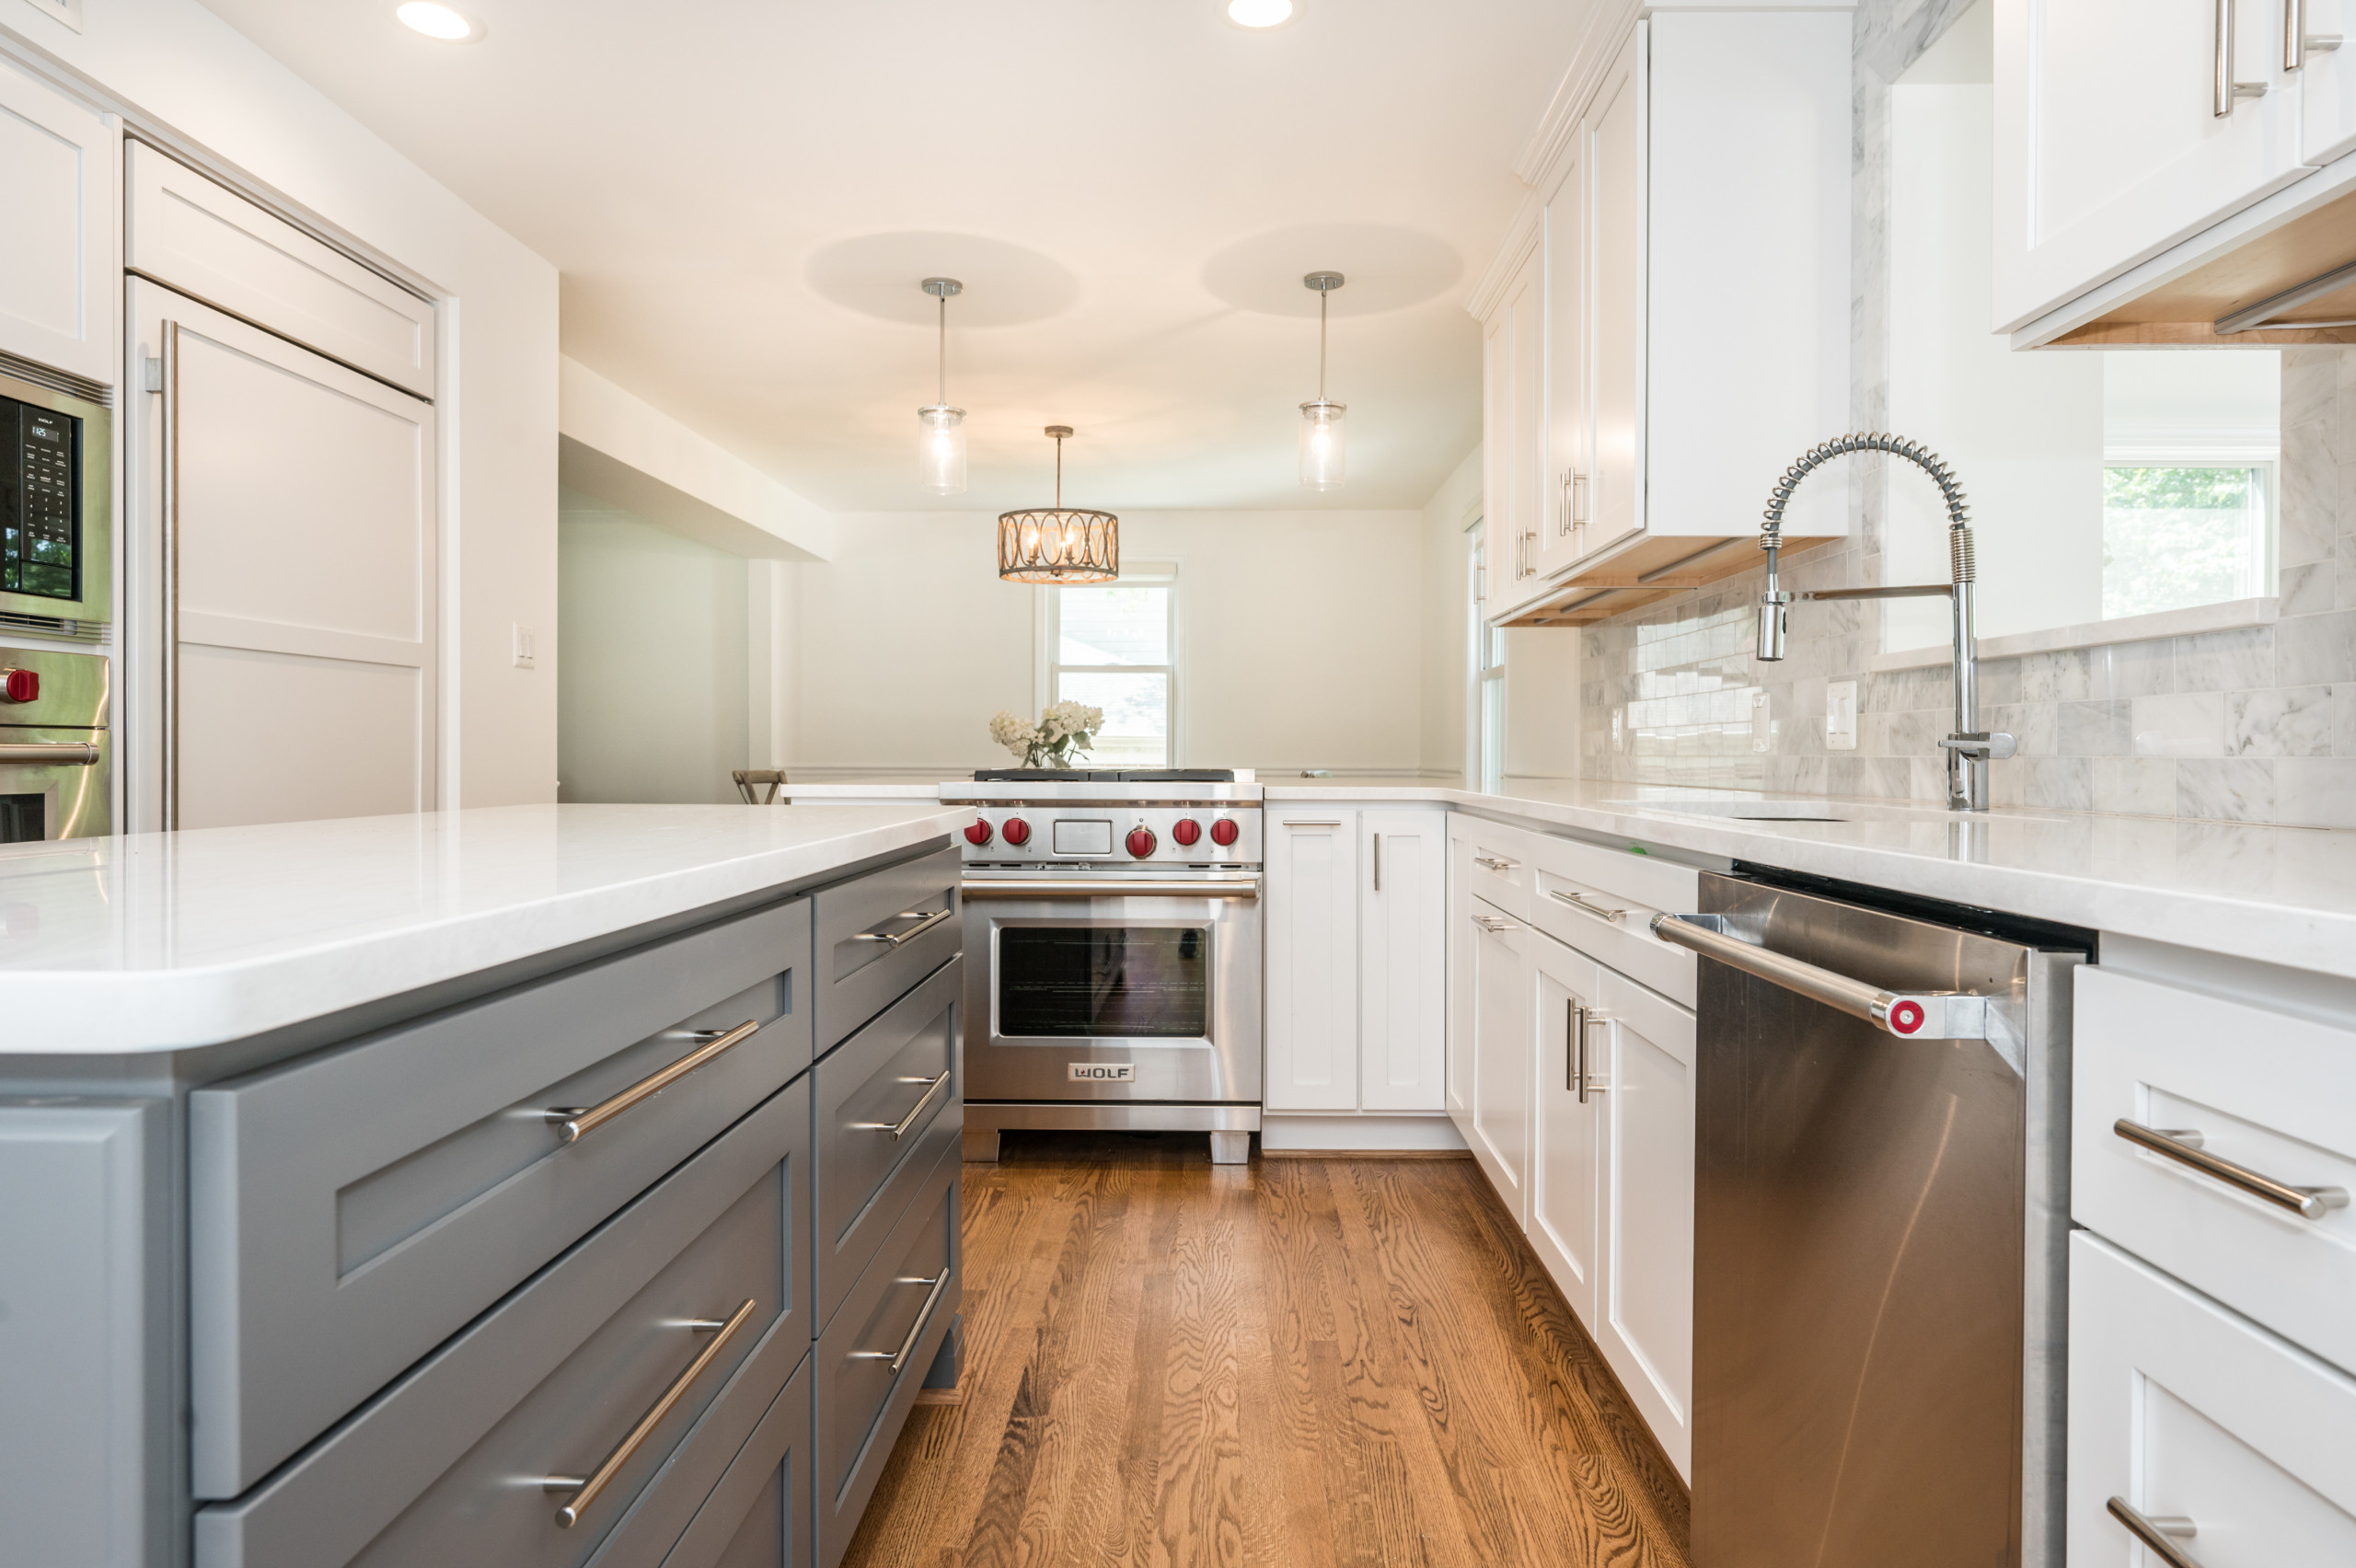 Alexandria Contemporary Kitchen Remodel with Clean White Features